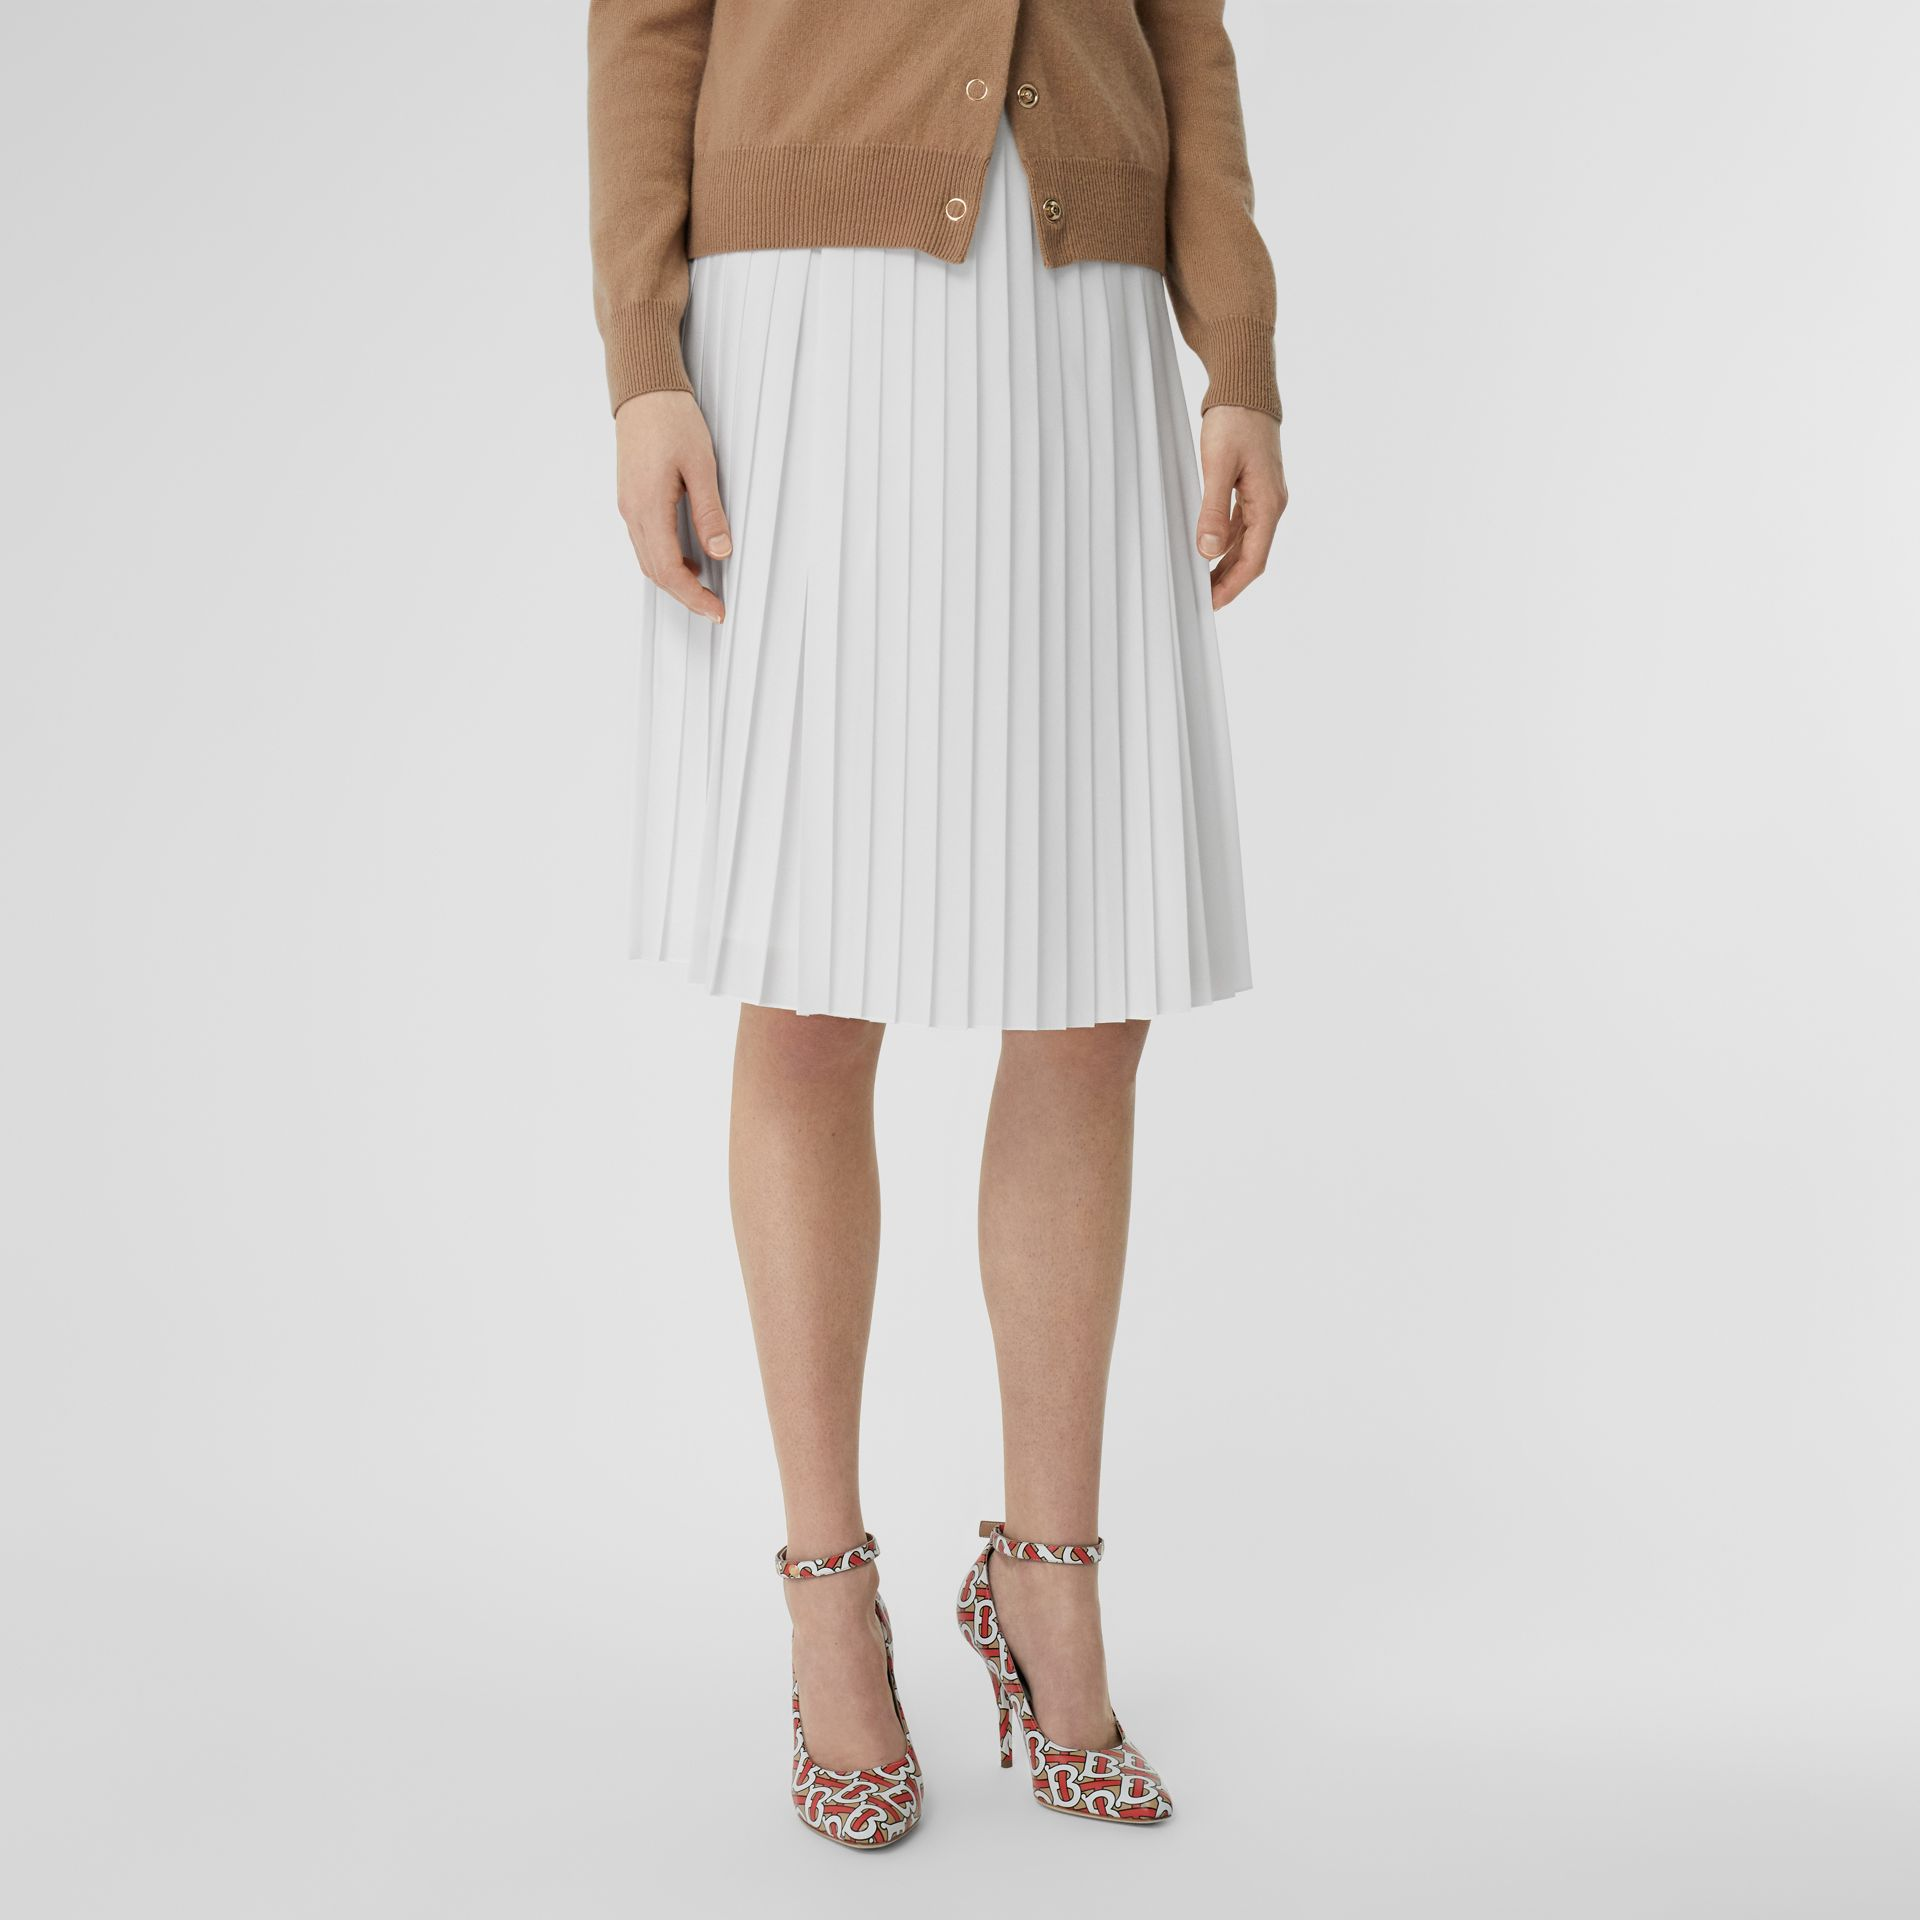 Silk-lined Pleated Skirt in Optic White - Women | Burberry Australia - gallery image 4